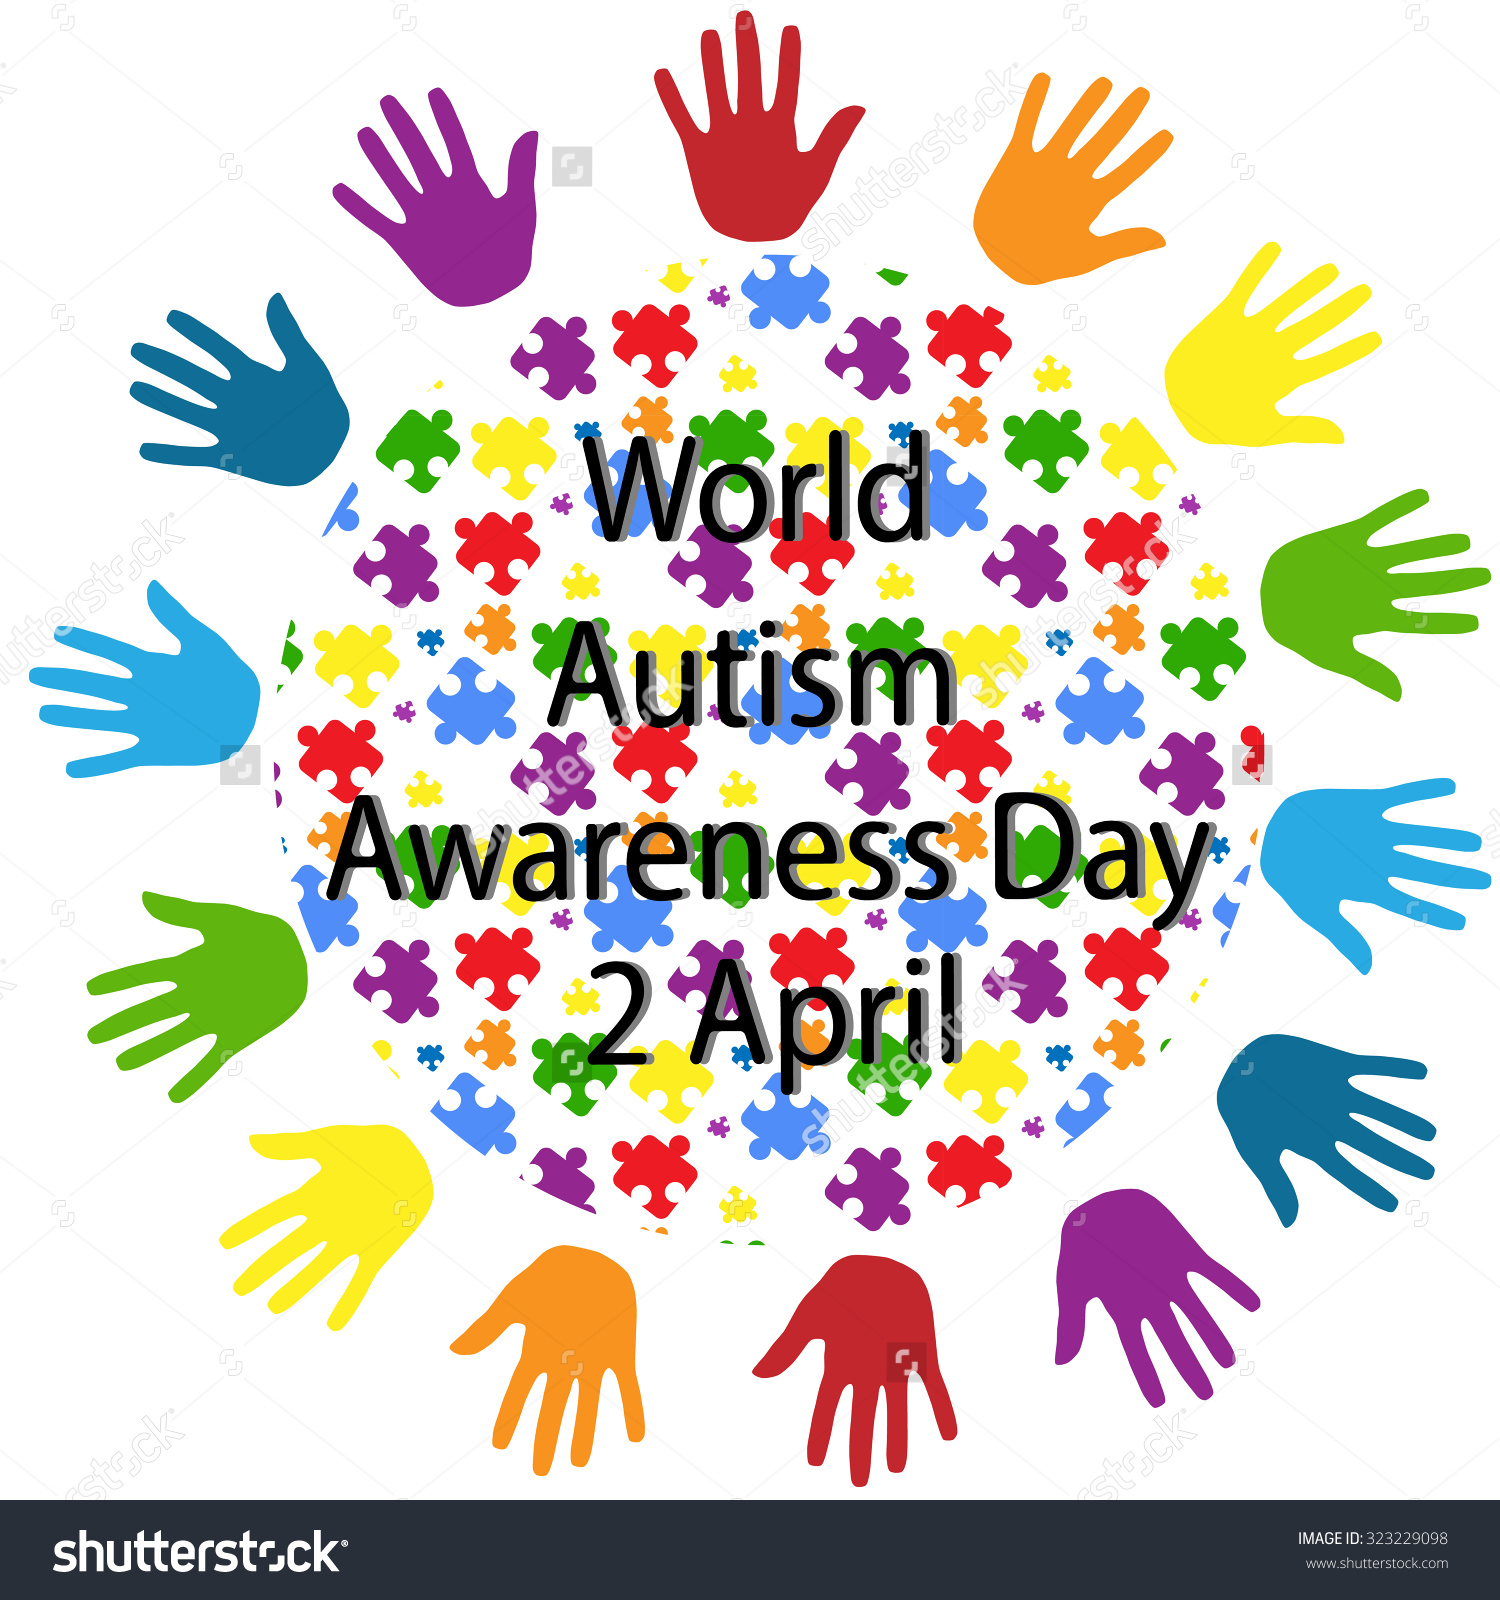 April is autism awareness month clip art image royalty free library Autism awareness day clipart - ClipartFox image royalty free library